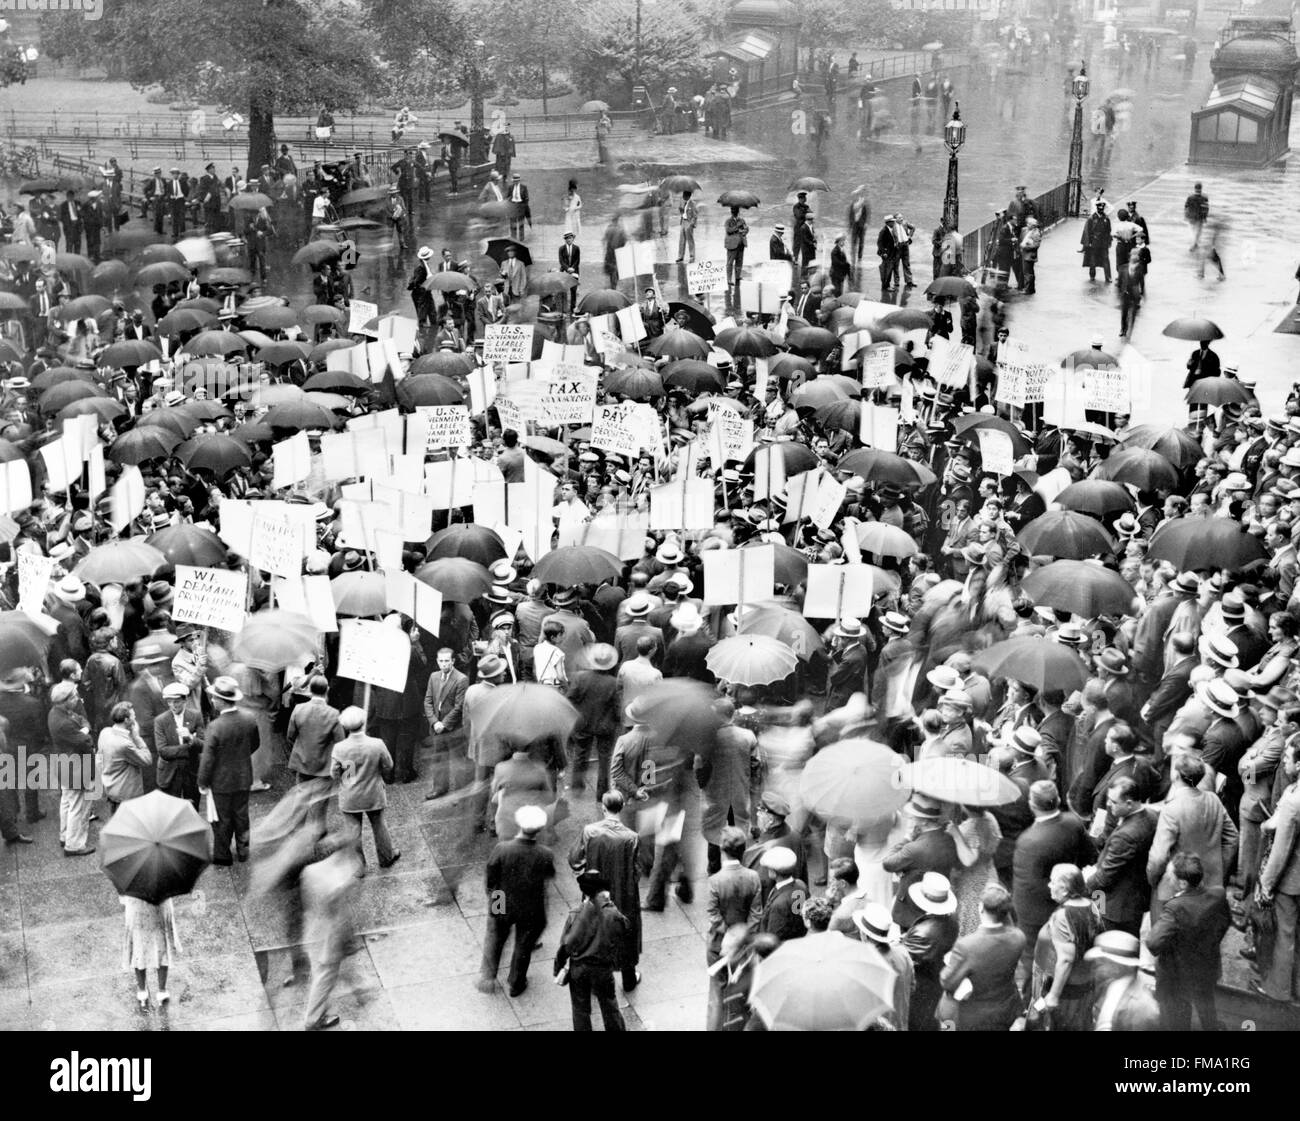 Great Depression, USA. Crowd of depositors gathering outside the Bank of United States after its failure in 1931. - Stock Image